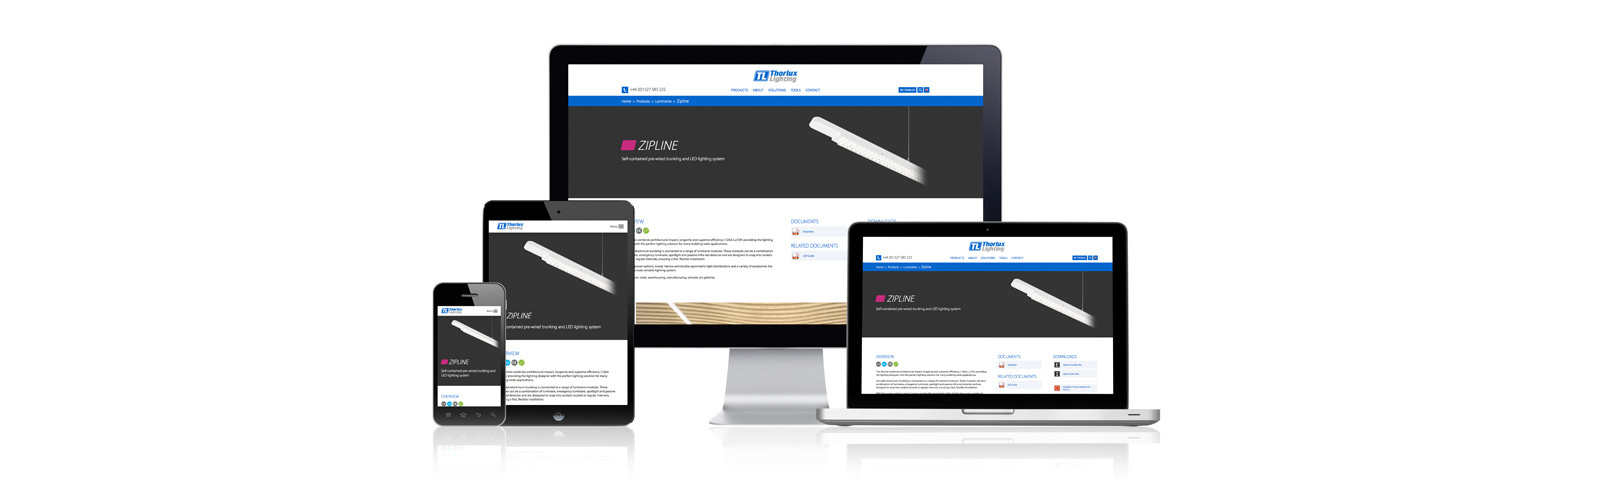 Thorlux Launches New Responsive Website